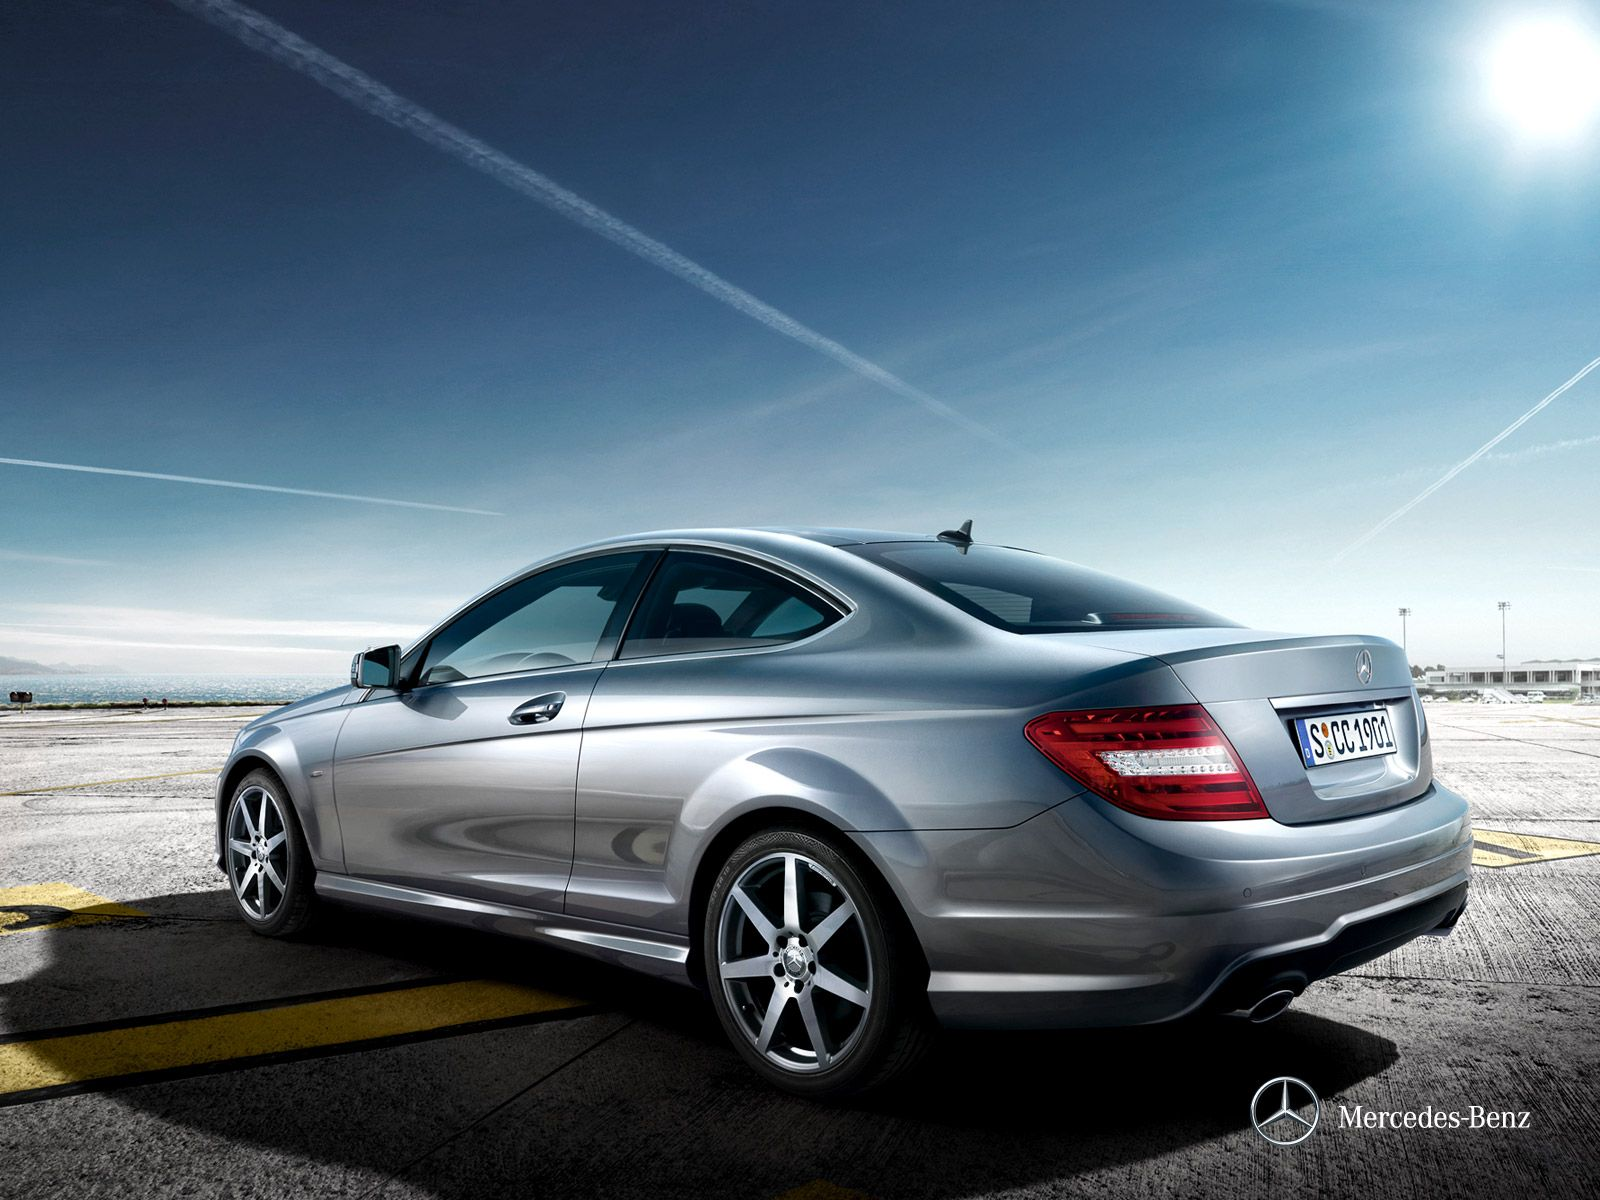 geneva at off shows events mercedes benz pictures the blows in roof class lease e car cabrio cabriolet revealed new merc news motor